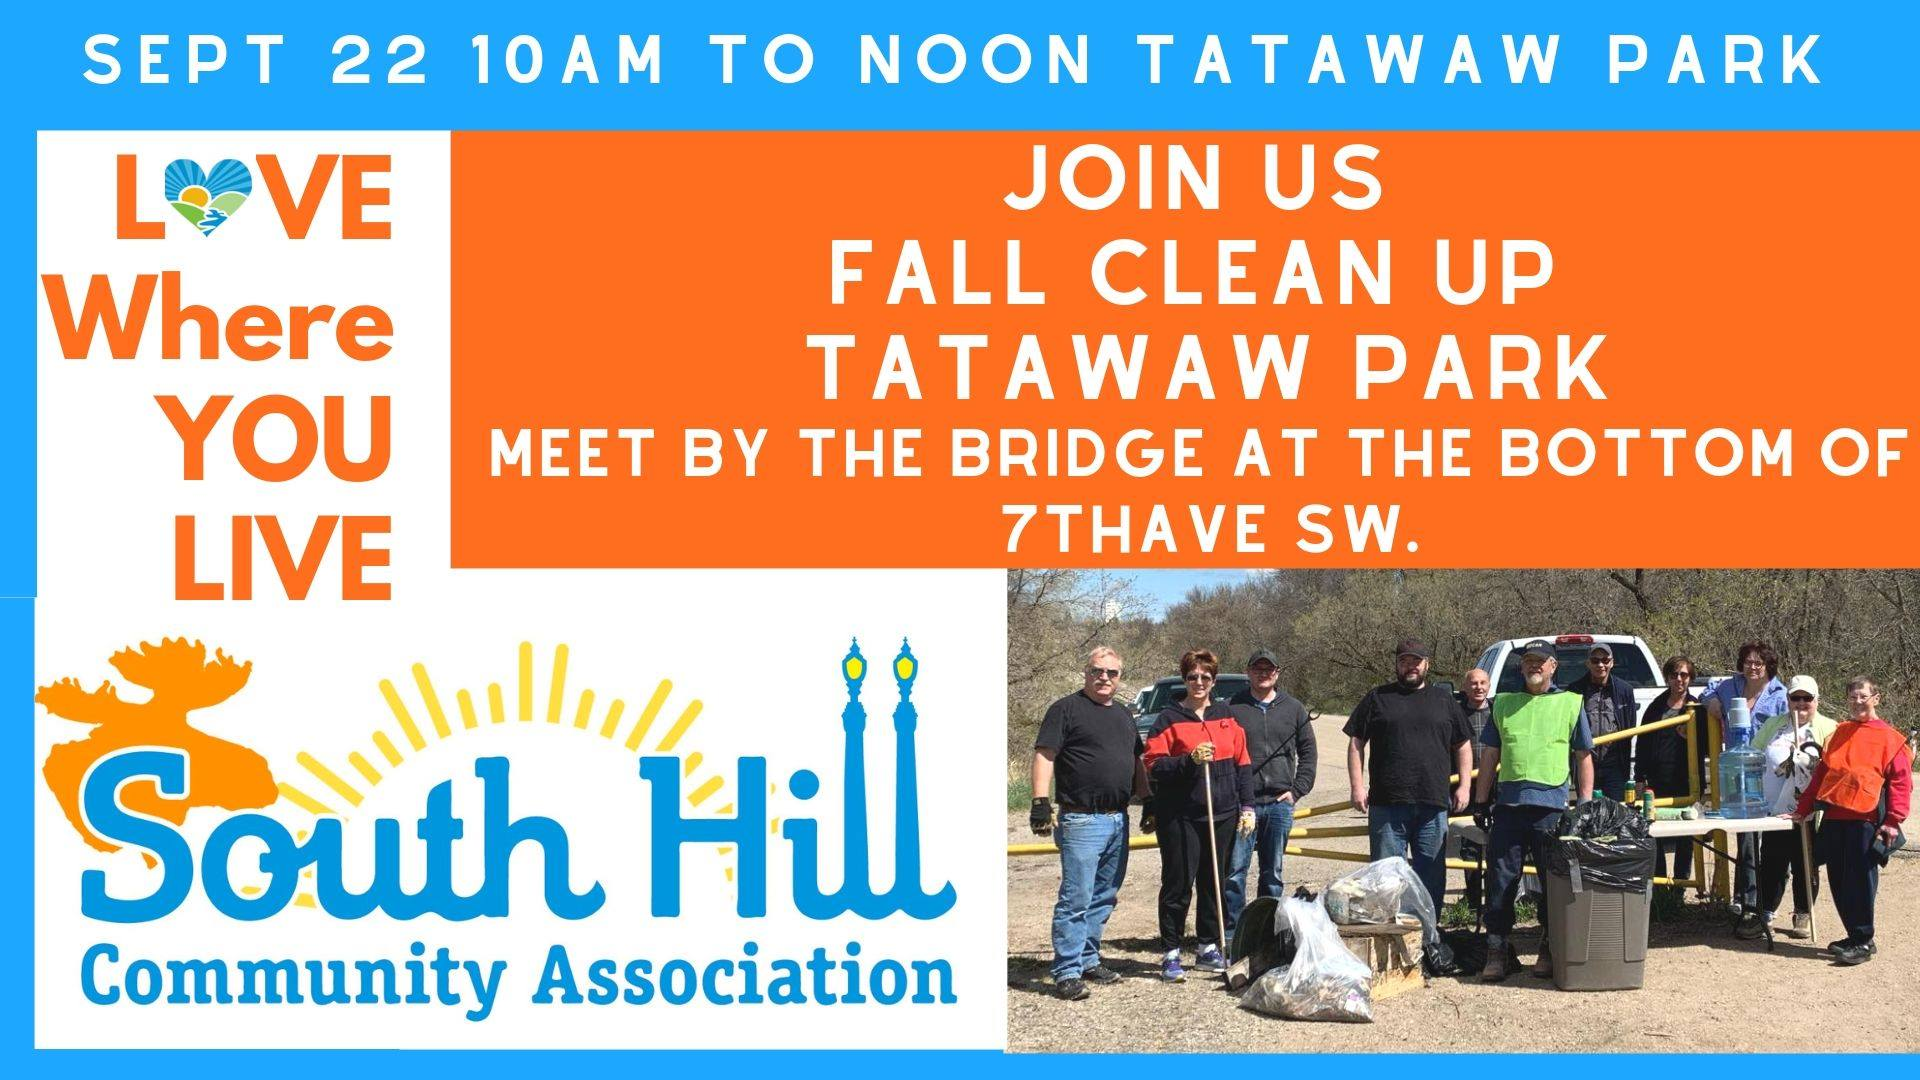 Sept. 22 2019. 9am-12 noon. TATAWAW Park Cleanup  Tatawaw is Cree for there is room for everyone Welcome.  10am to noon Everyone welcome!  We will have refreshments  *****Please bring your own to-go cup.  We will have garbage bags and gloves.  Bring your friends and family.  Meet at the bridge at the bottom of 7th Avenue South West